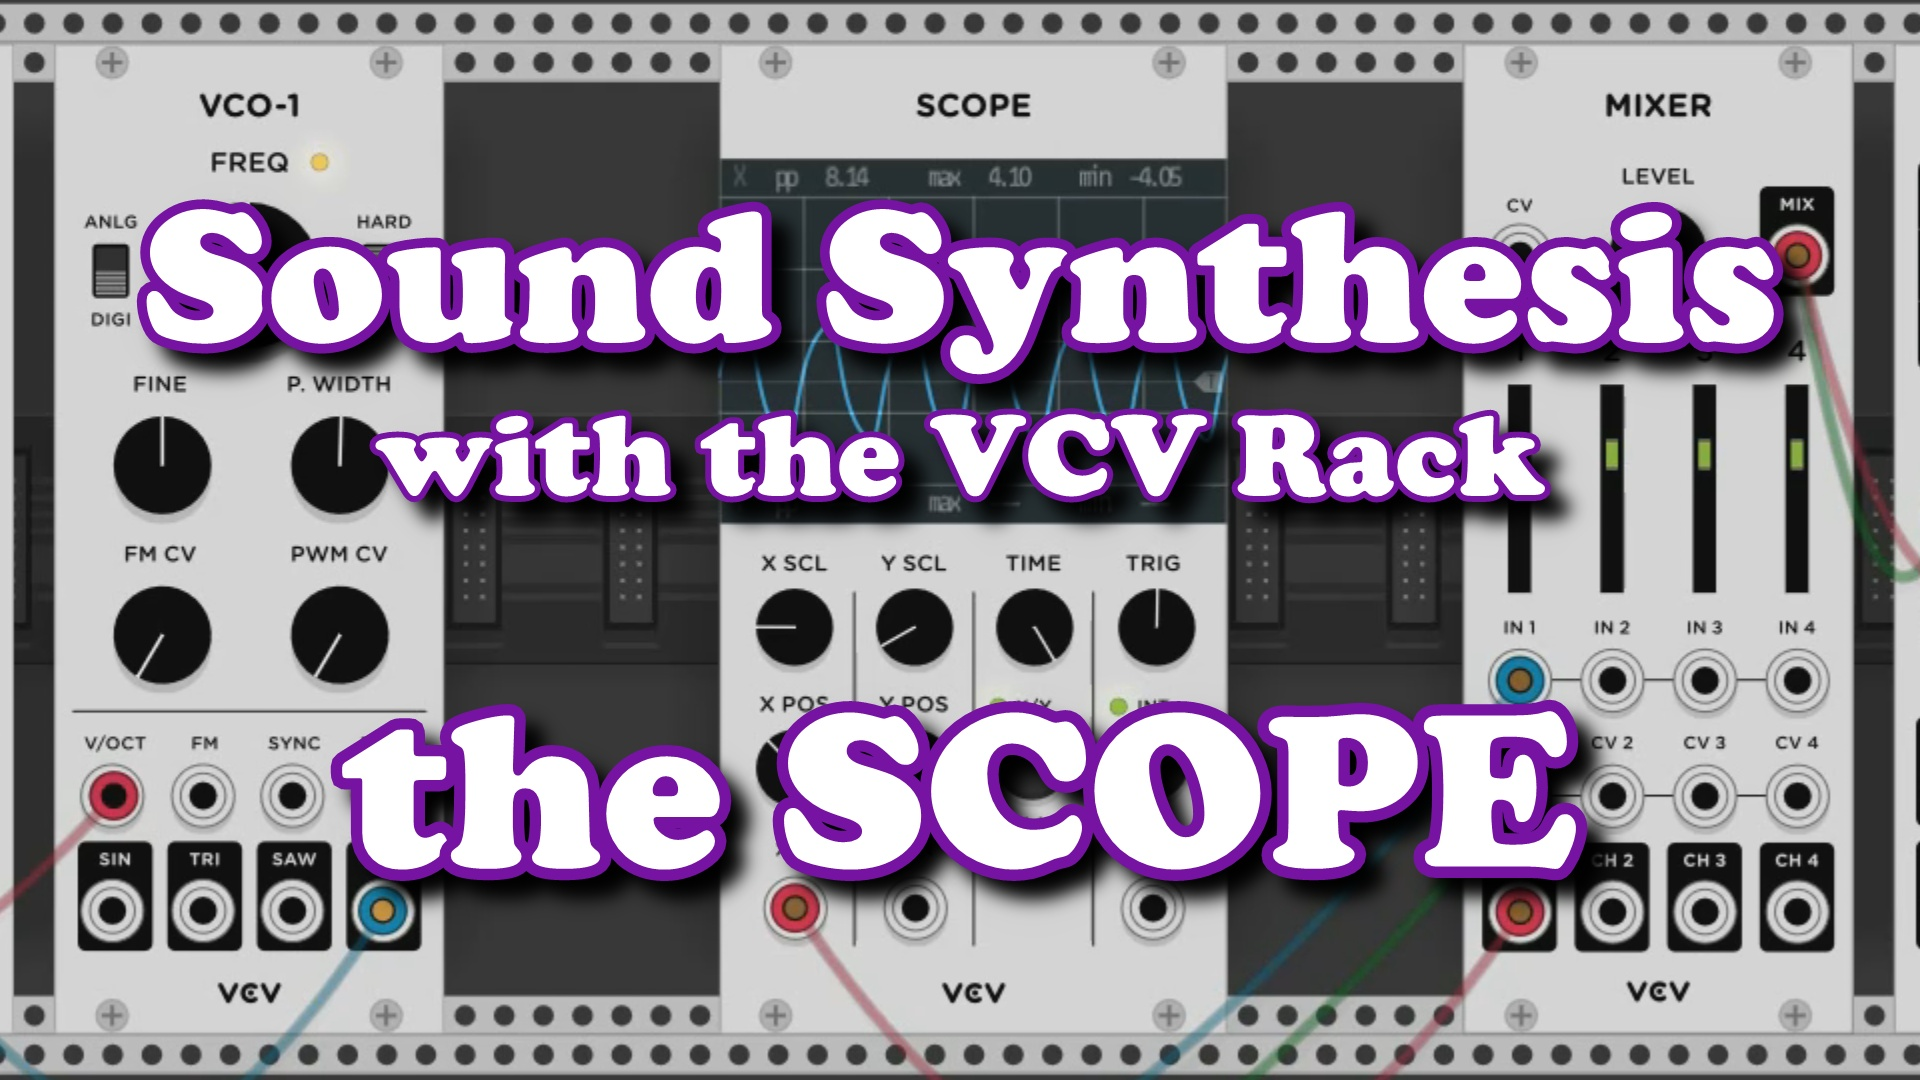 VCV 003 SCOPE screenhsot